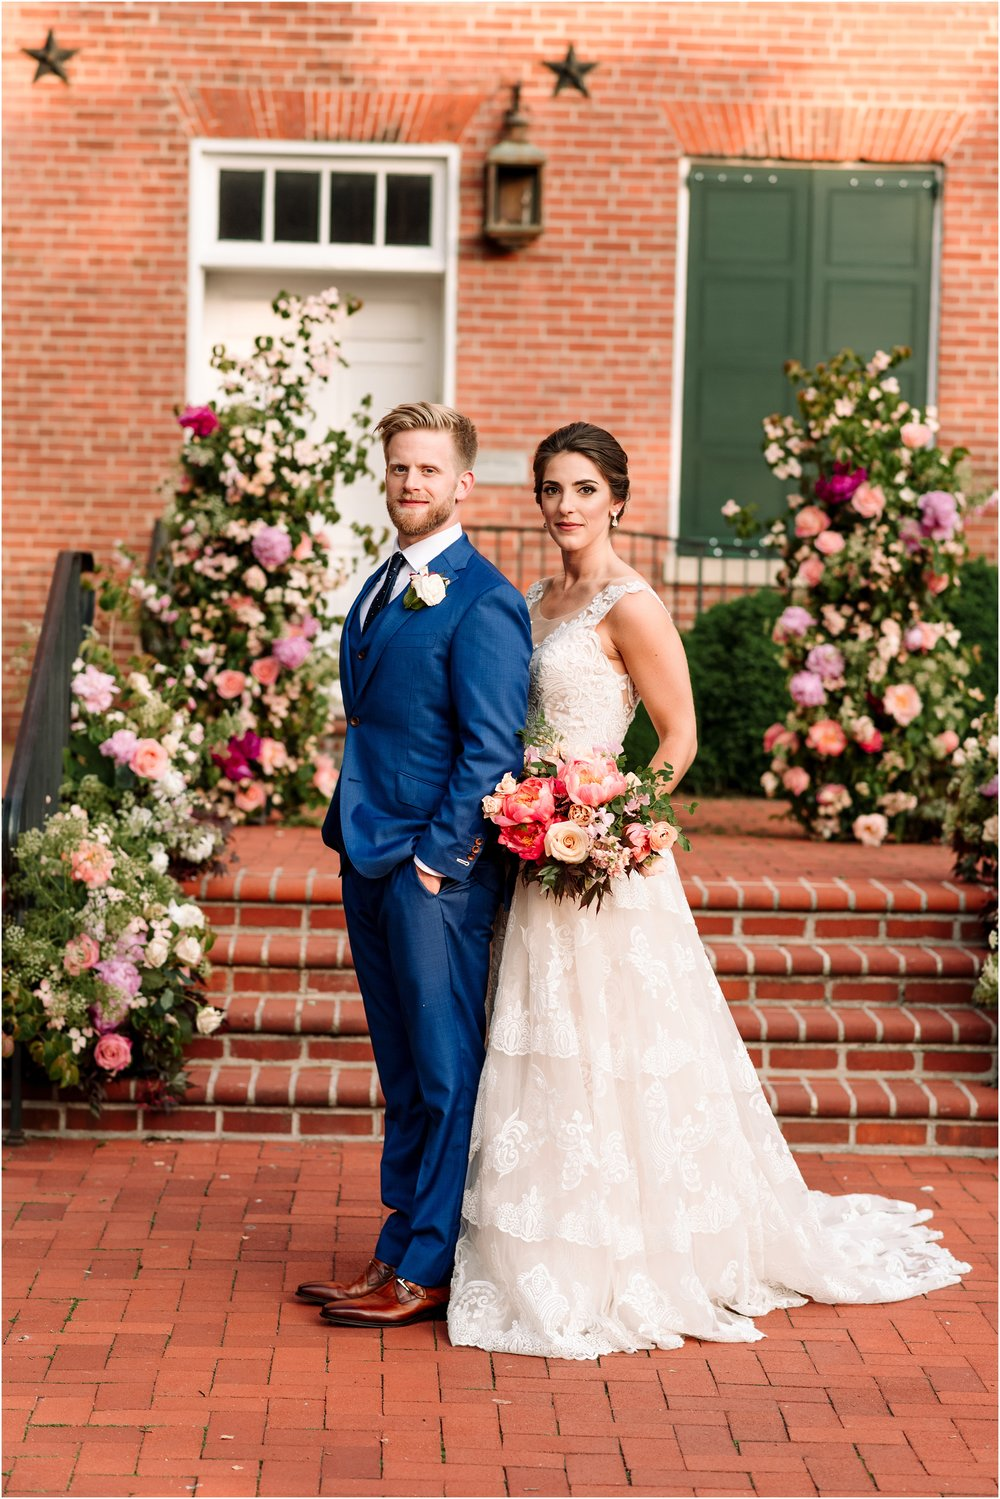 hannah leigh photography 1840s plaza wedding baltimore md_0087.jpg